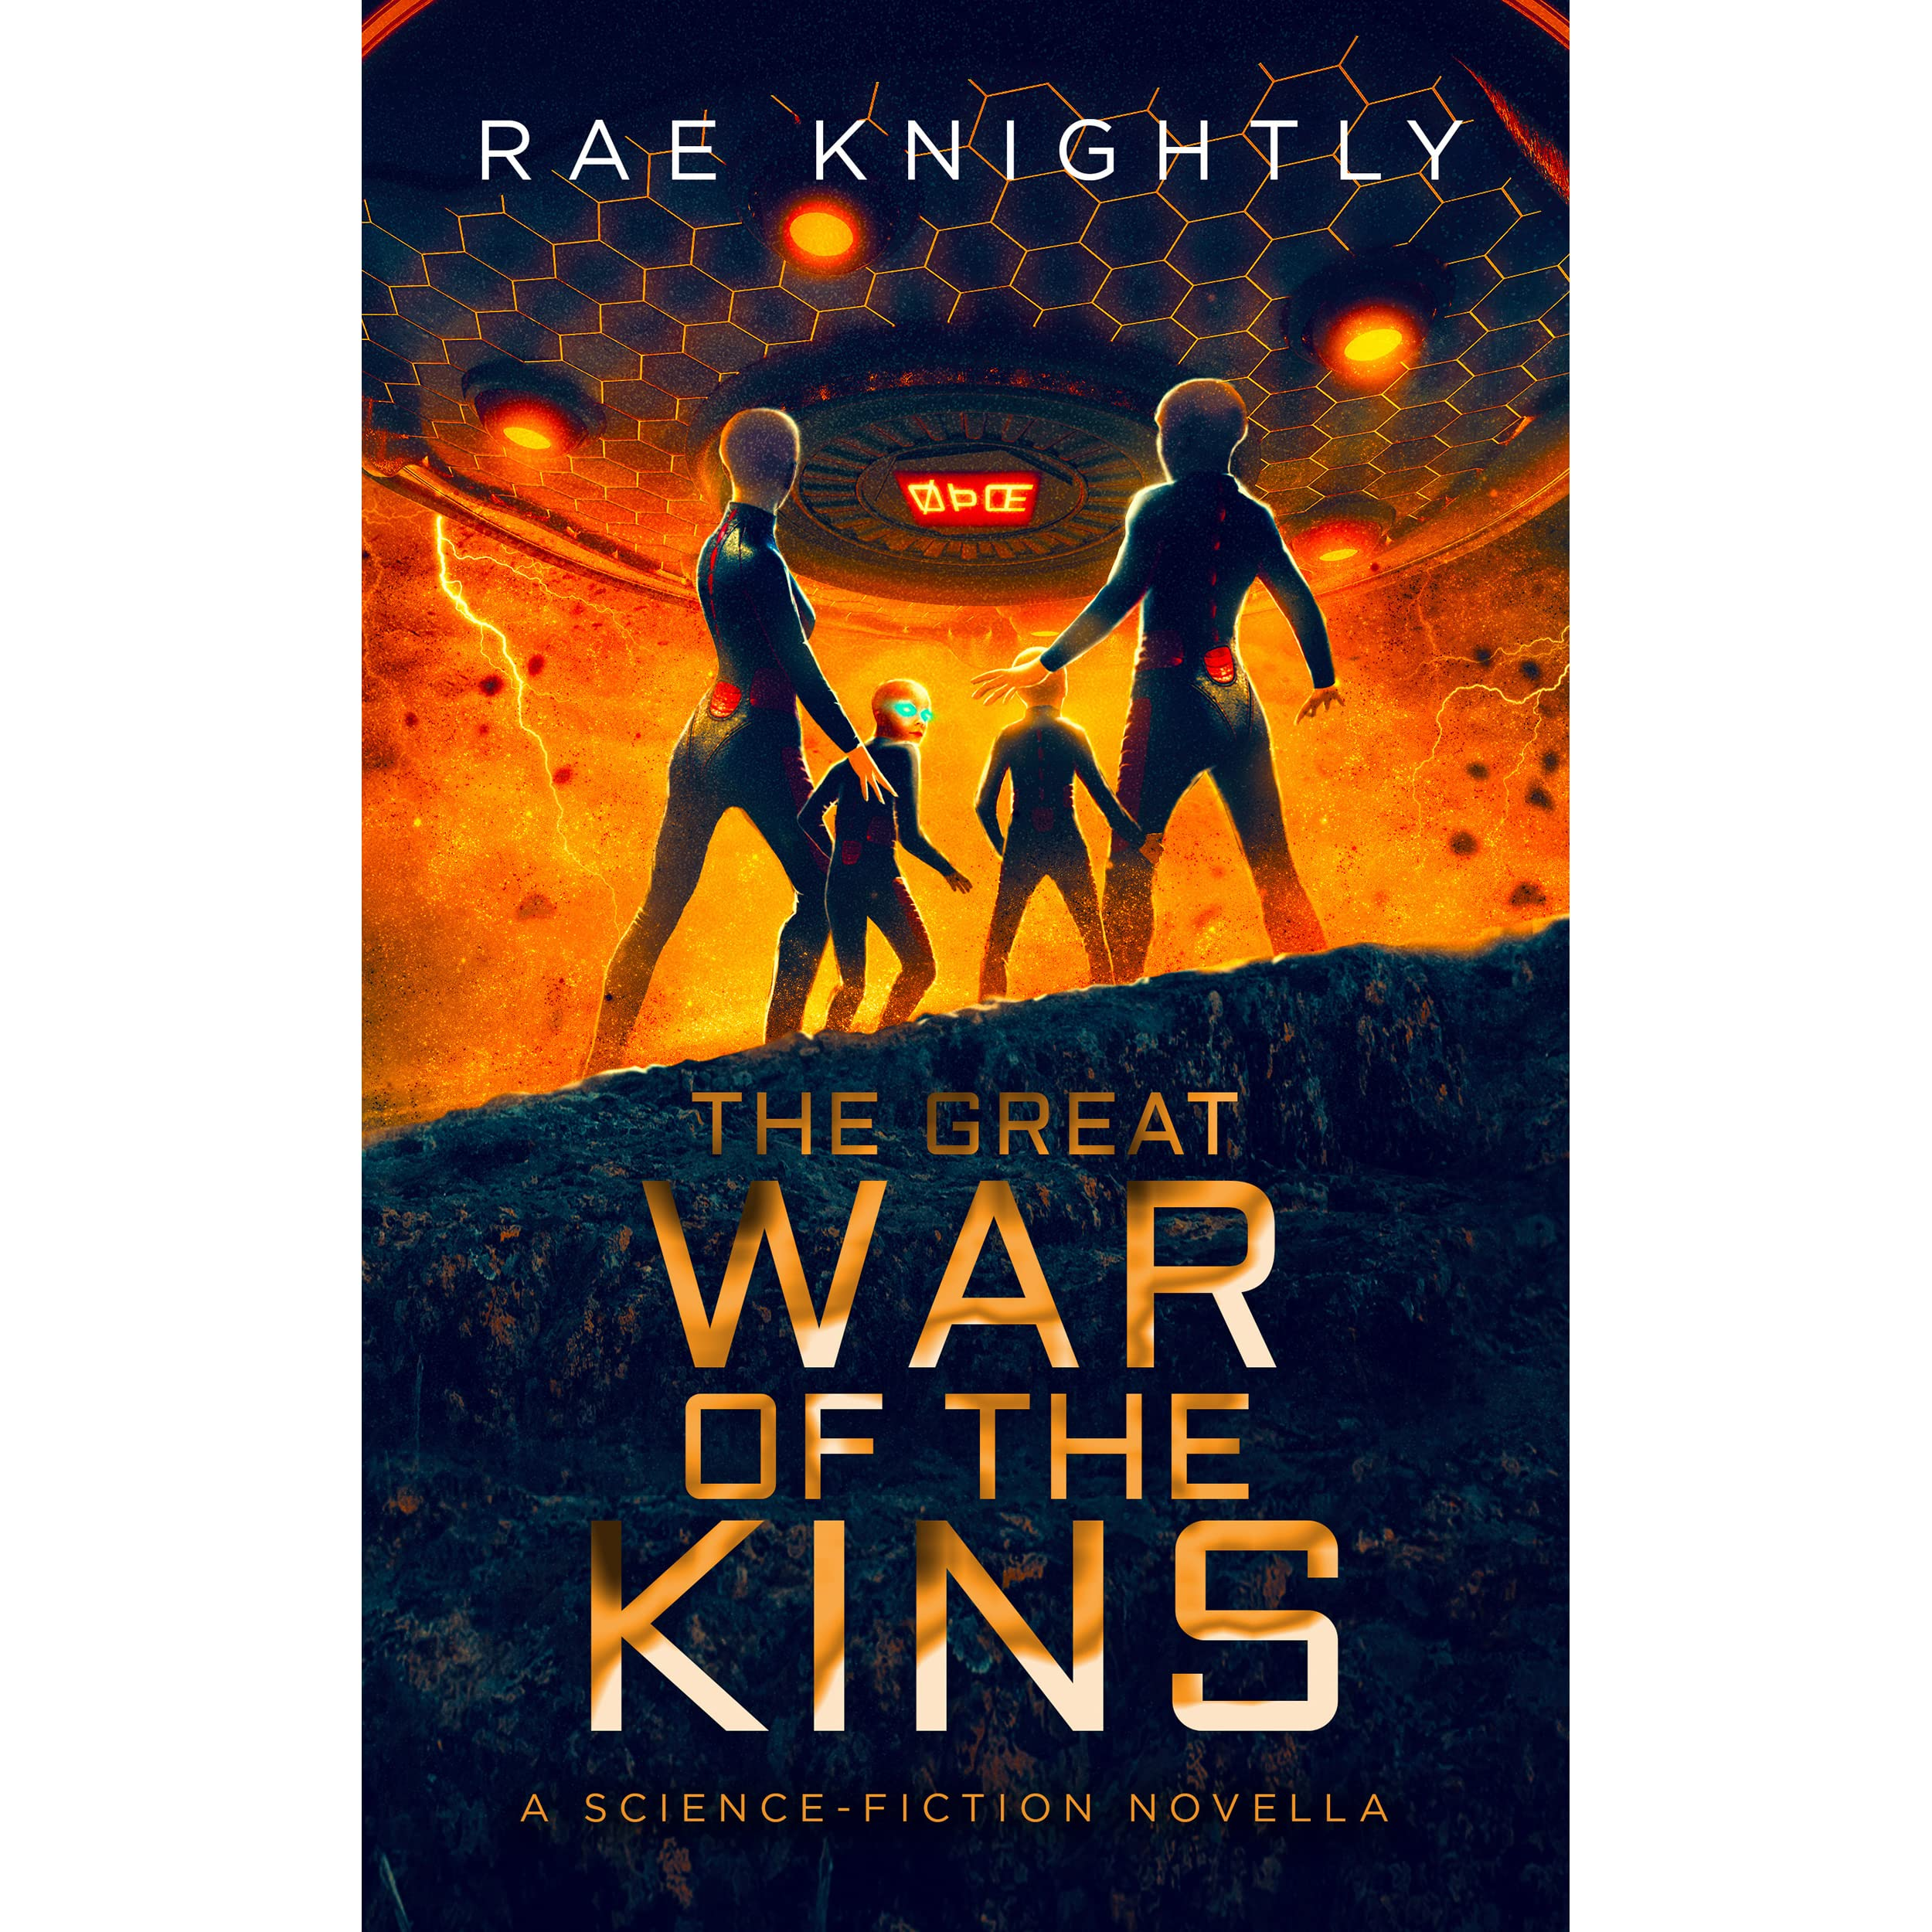 The Great War of the Kins by Rae Knightly